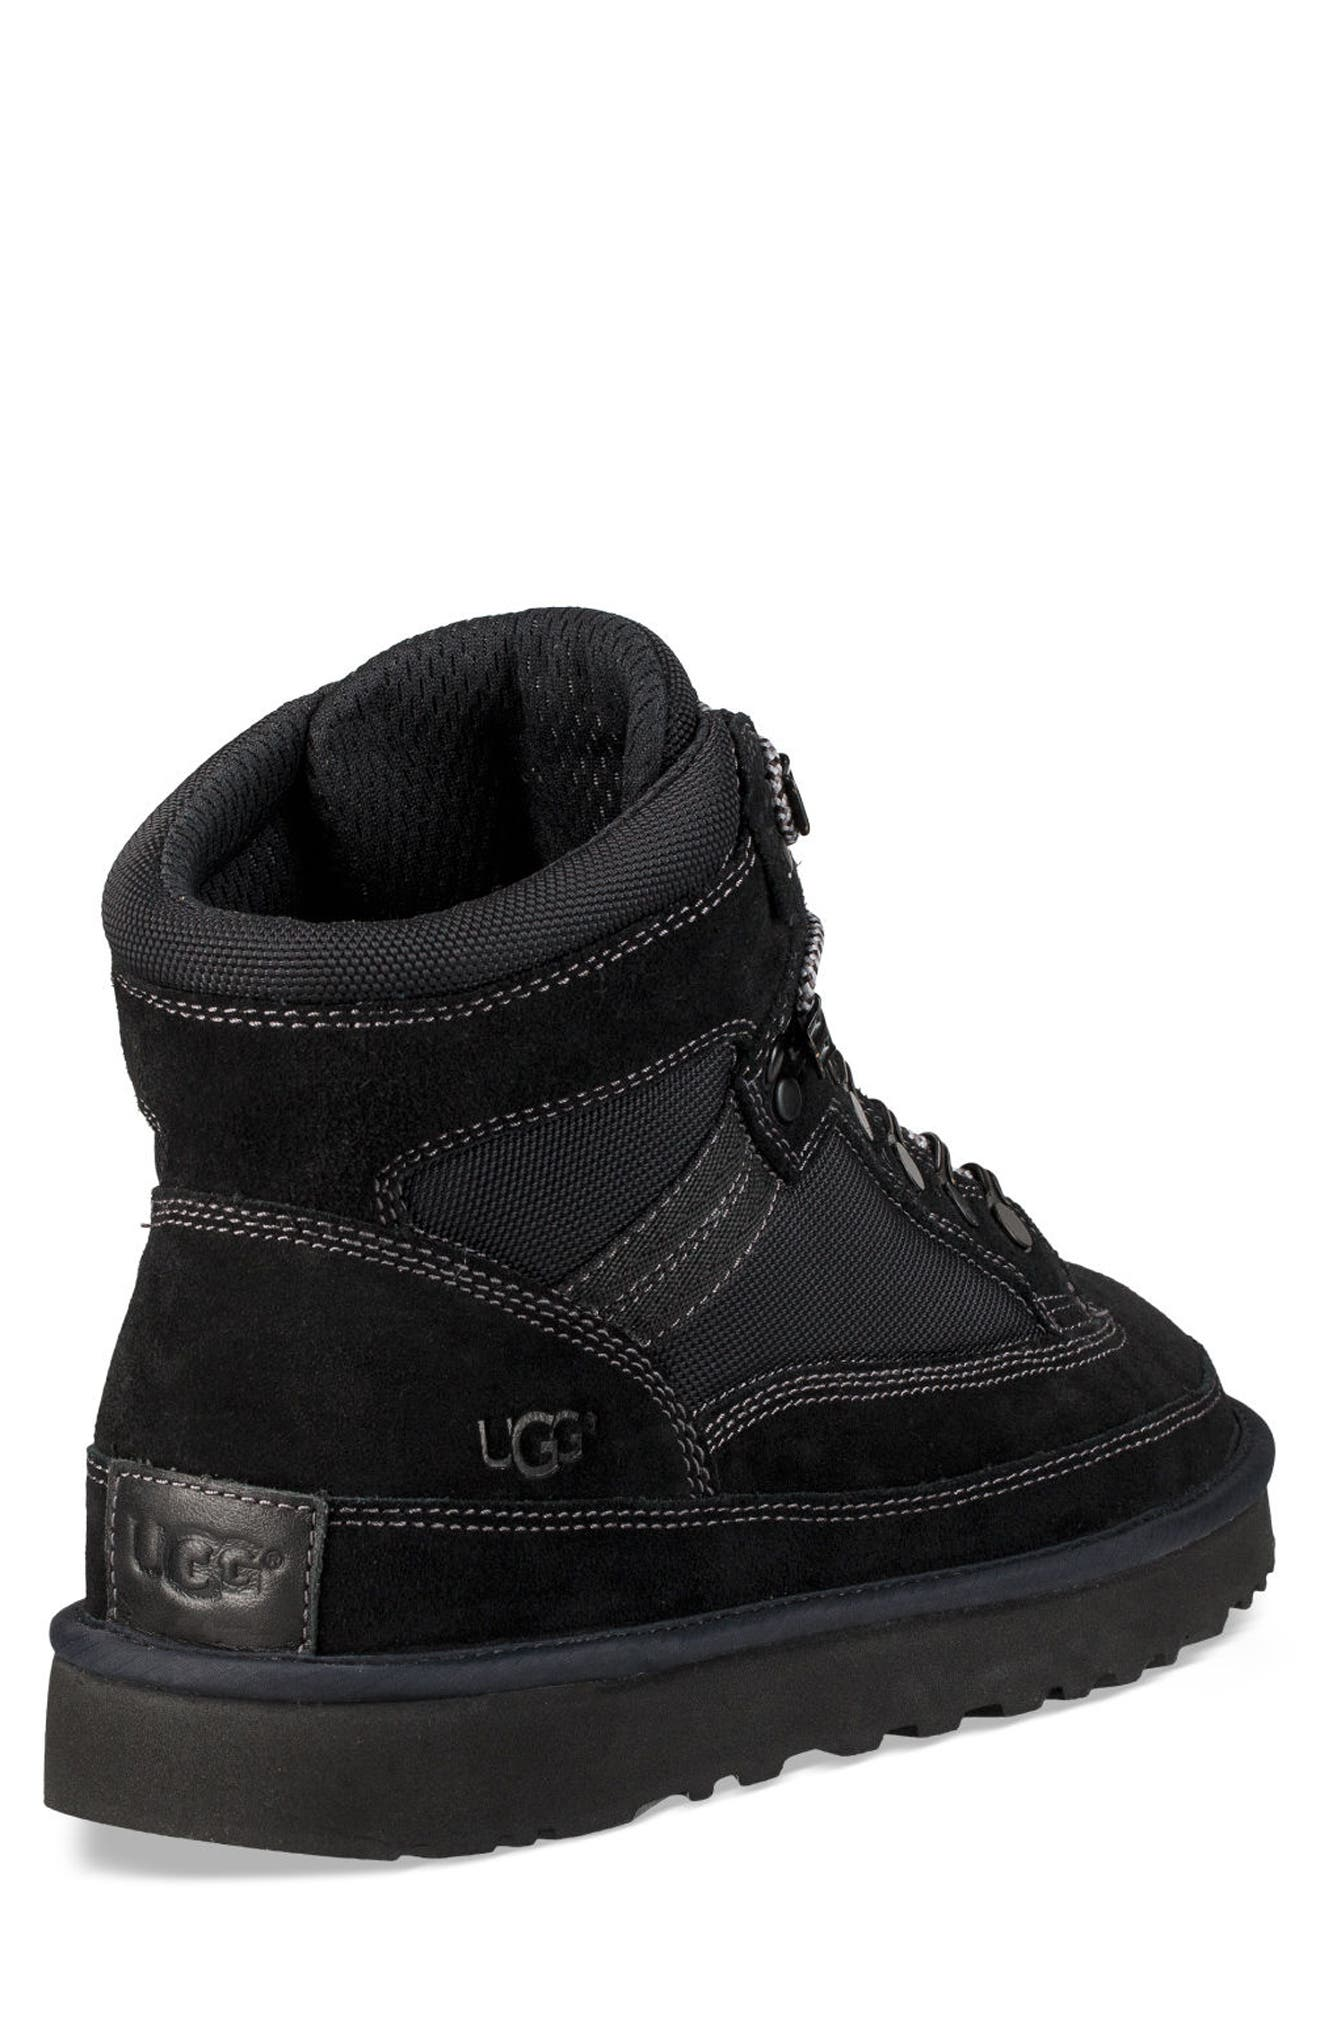 Highland Hiker Boot,                             Alternate thumbnail 2, color,                             BLACK